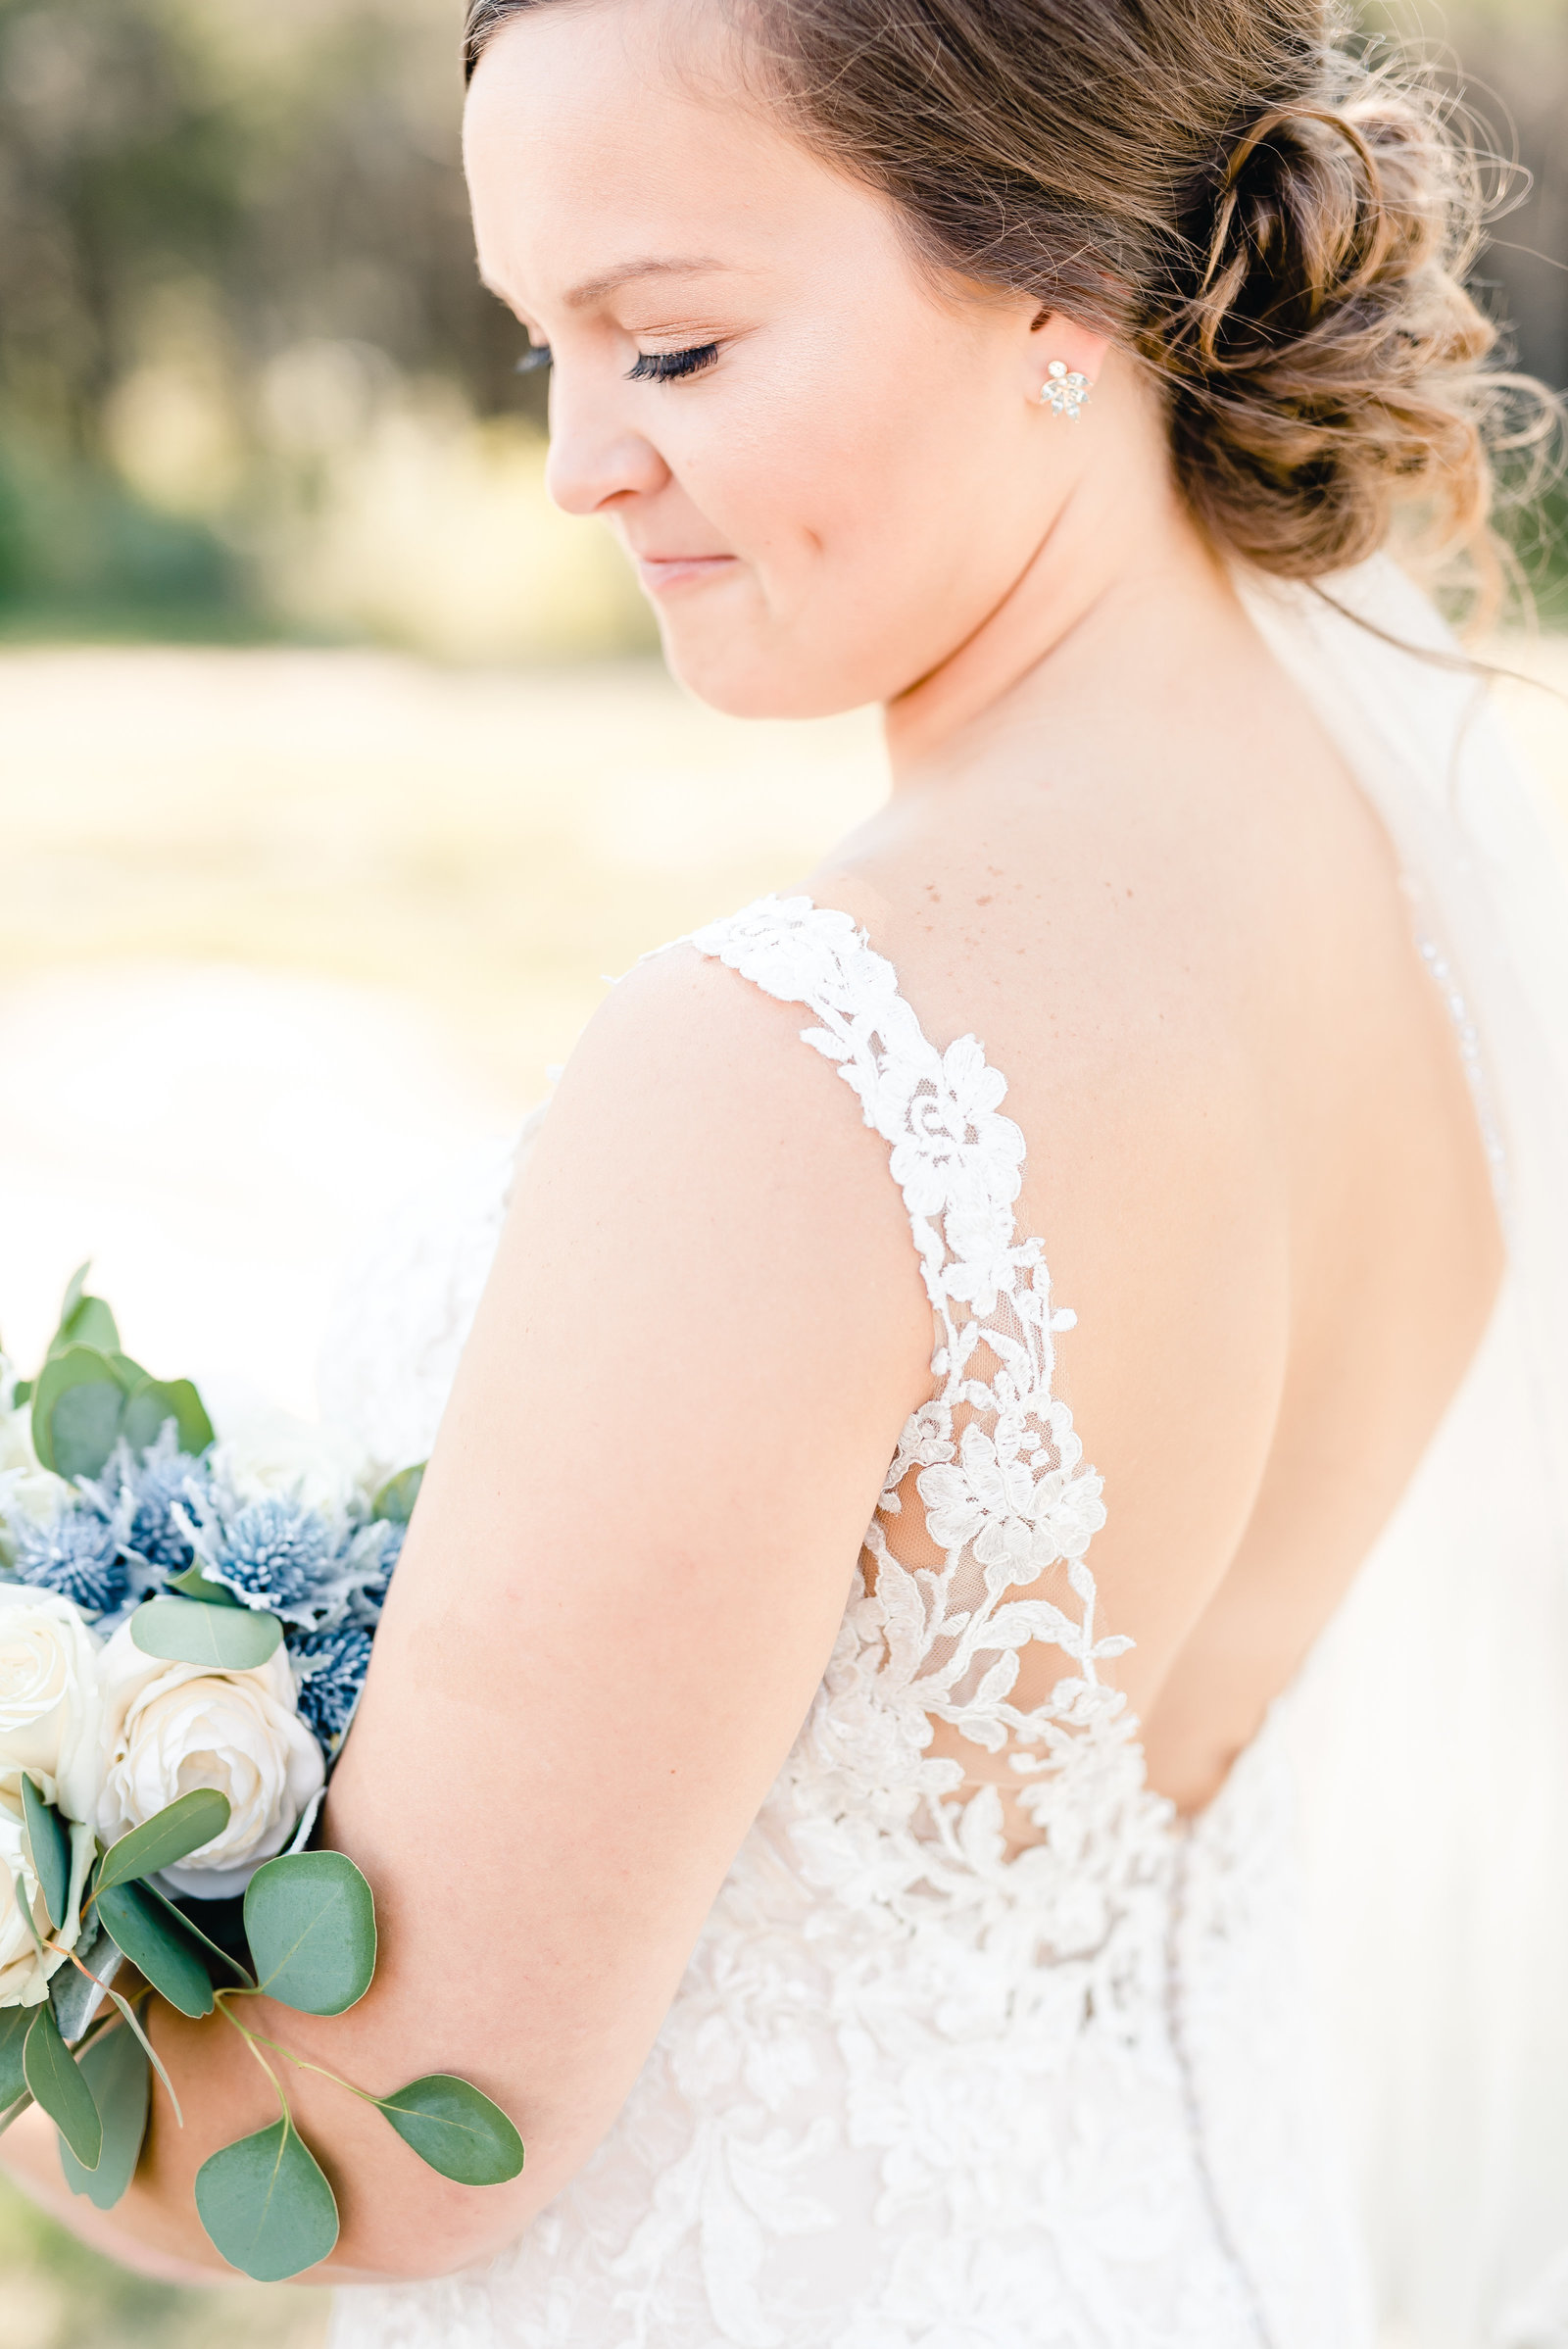 WeiderWeddingBrideandGroomPortraits-14